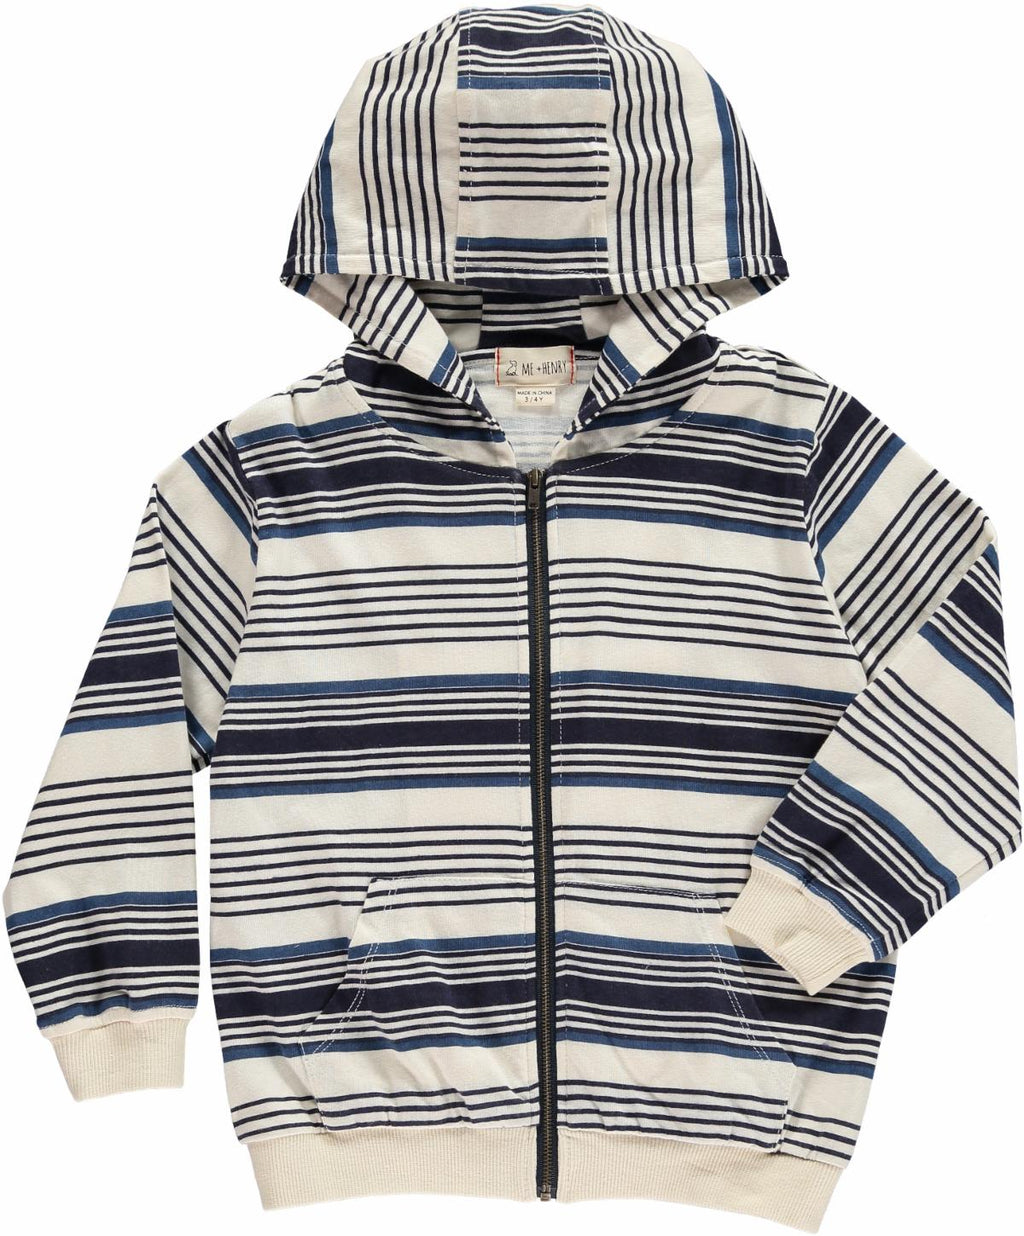 Me & Henry Blue Striped Hooded Top